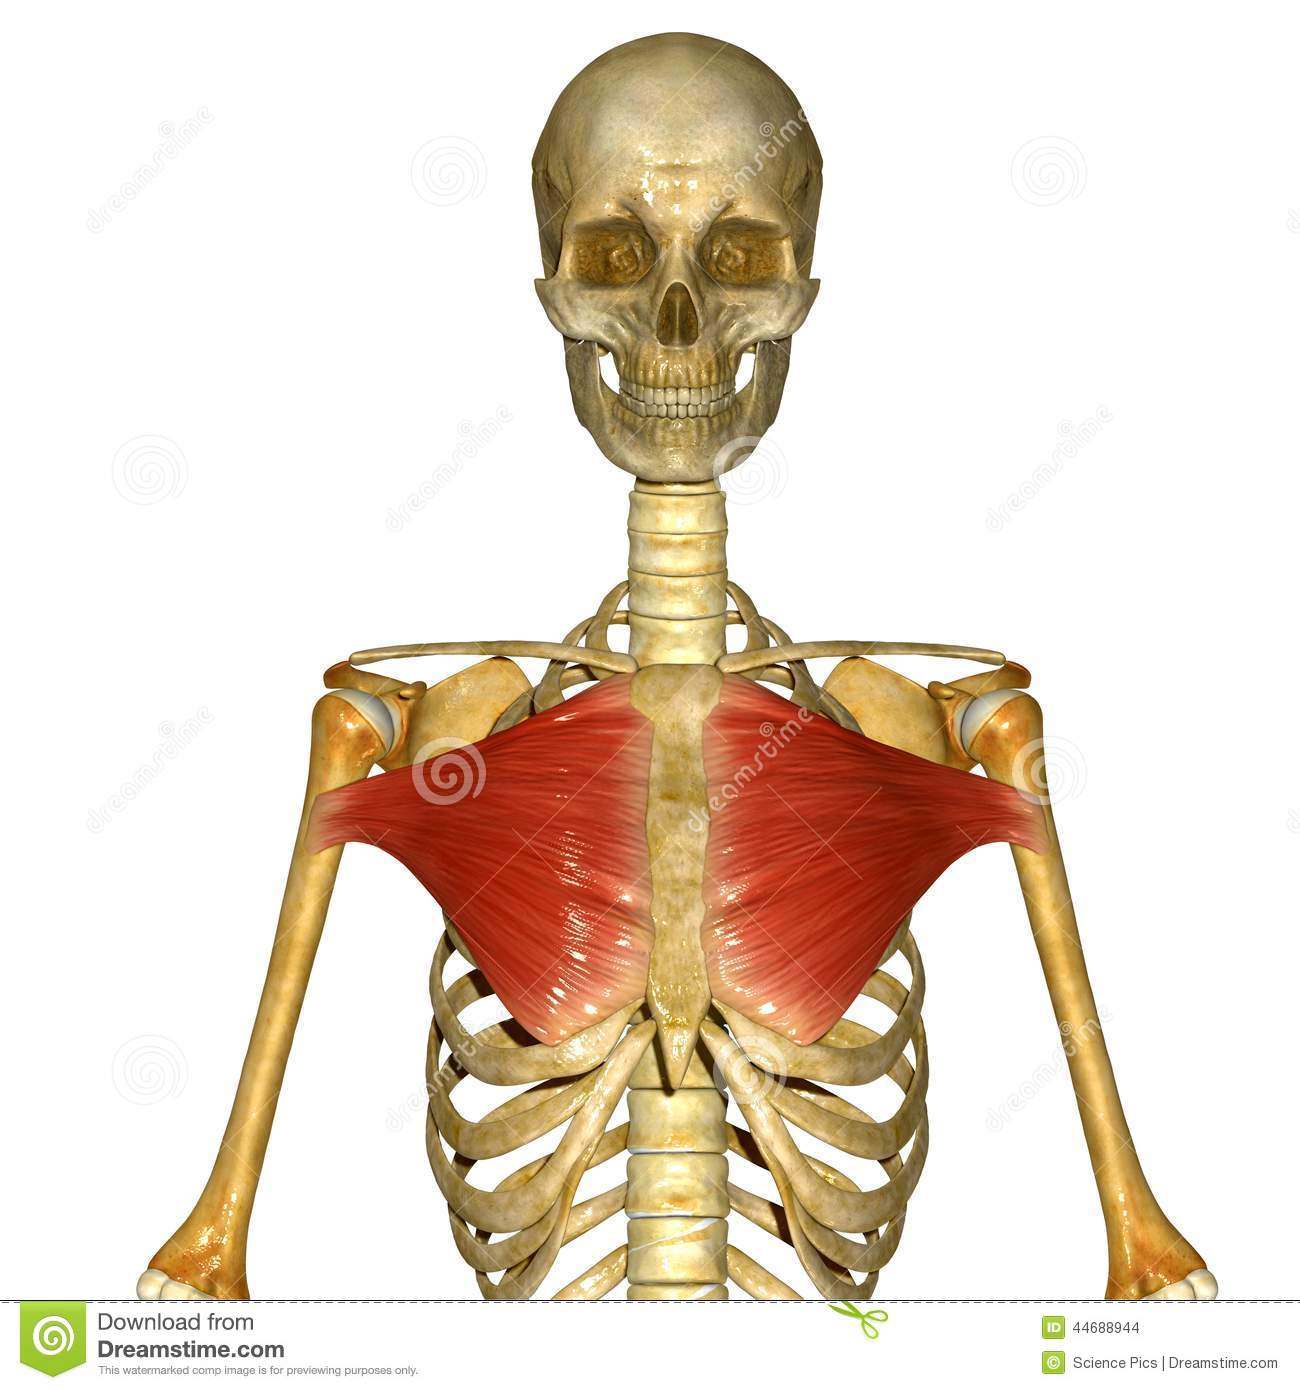 Chest muscles stock illustration. Illustration of illustration ...